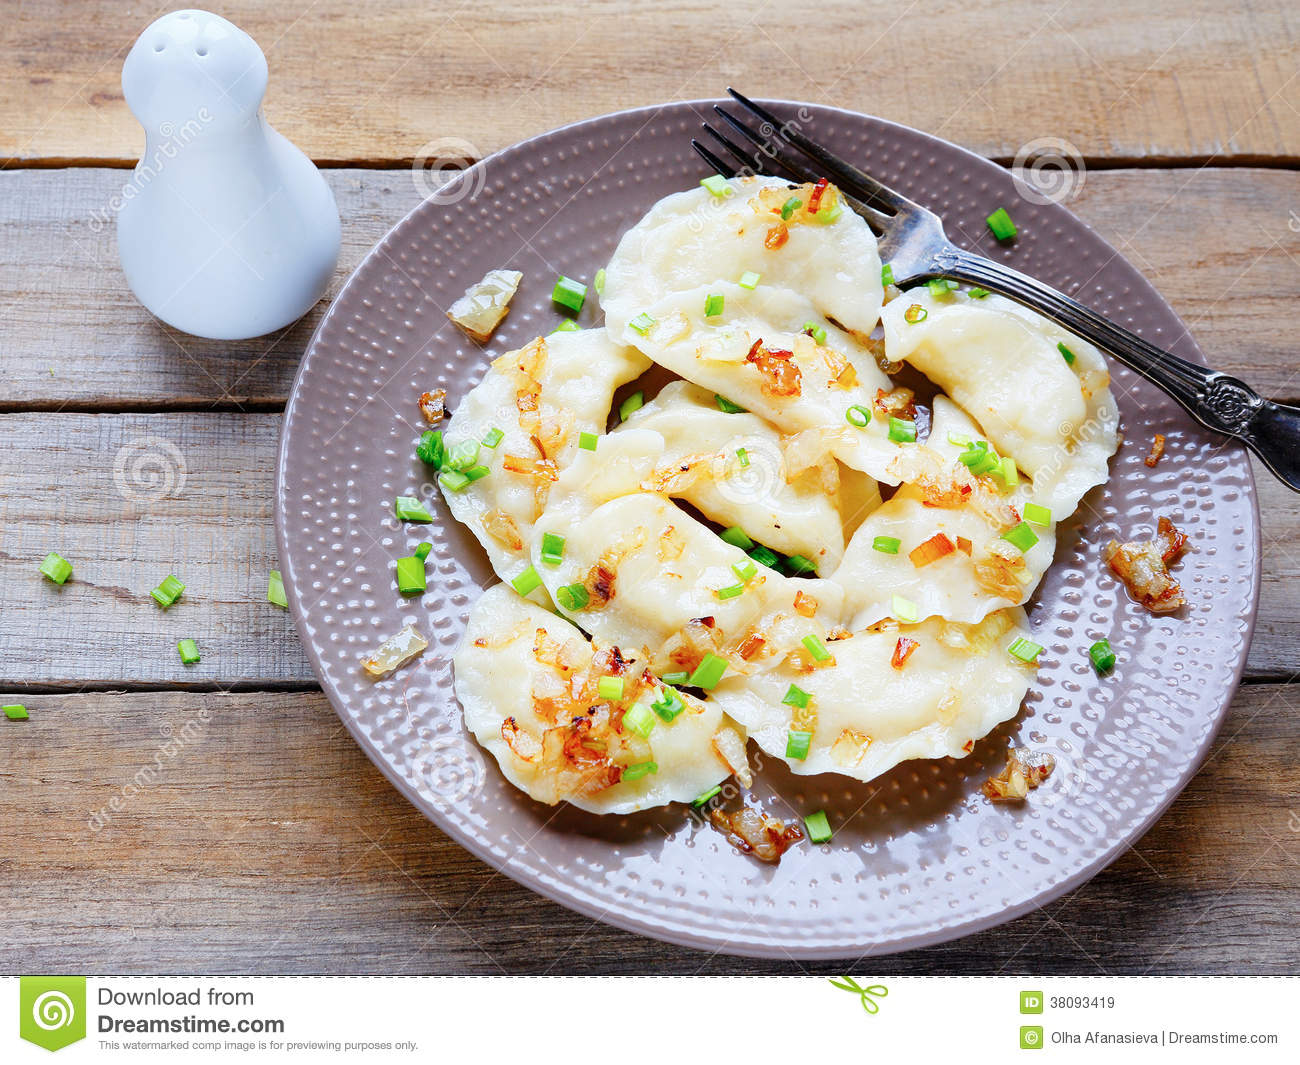 Dumplings with potato and onion rings